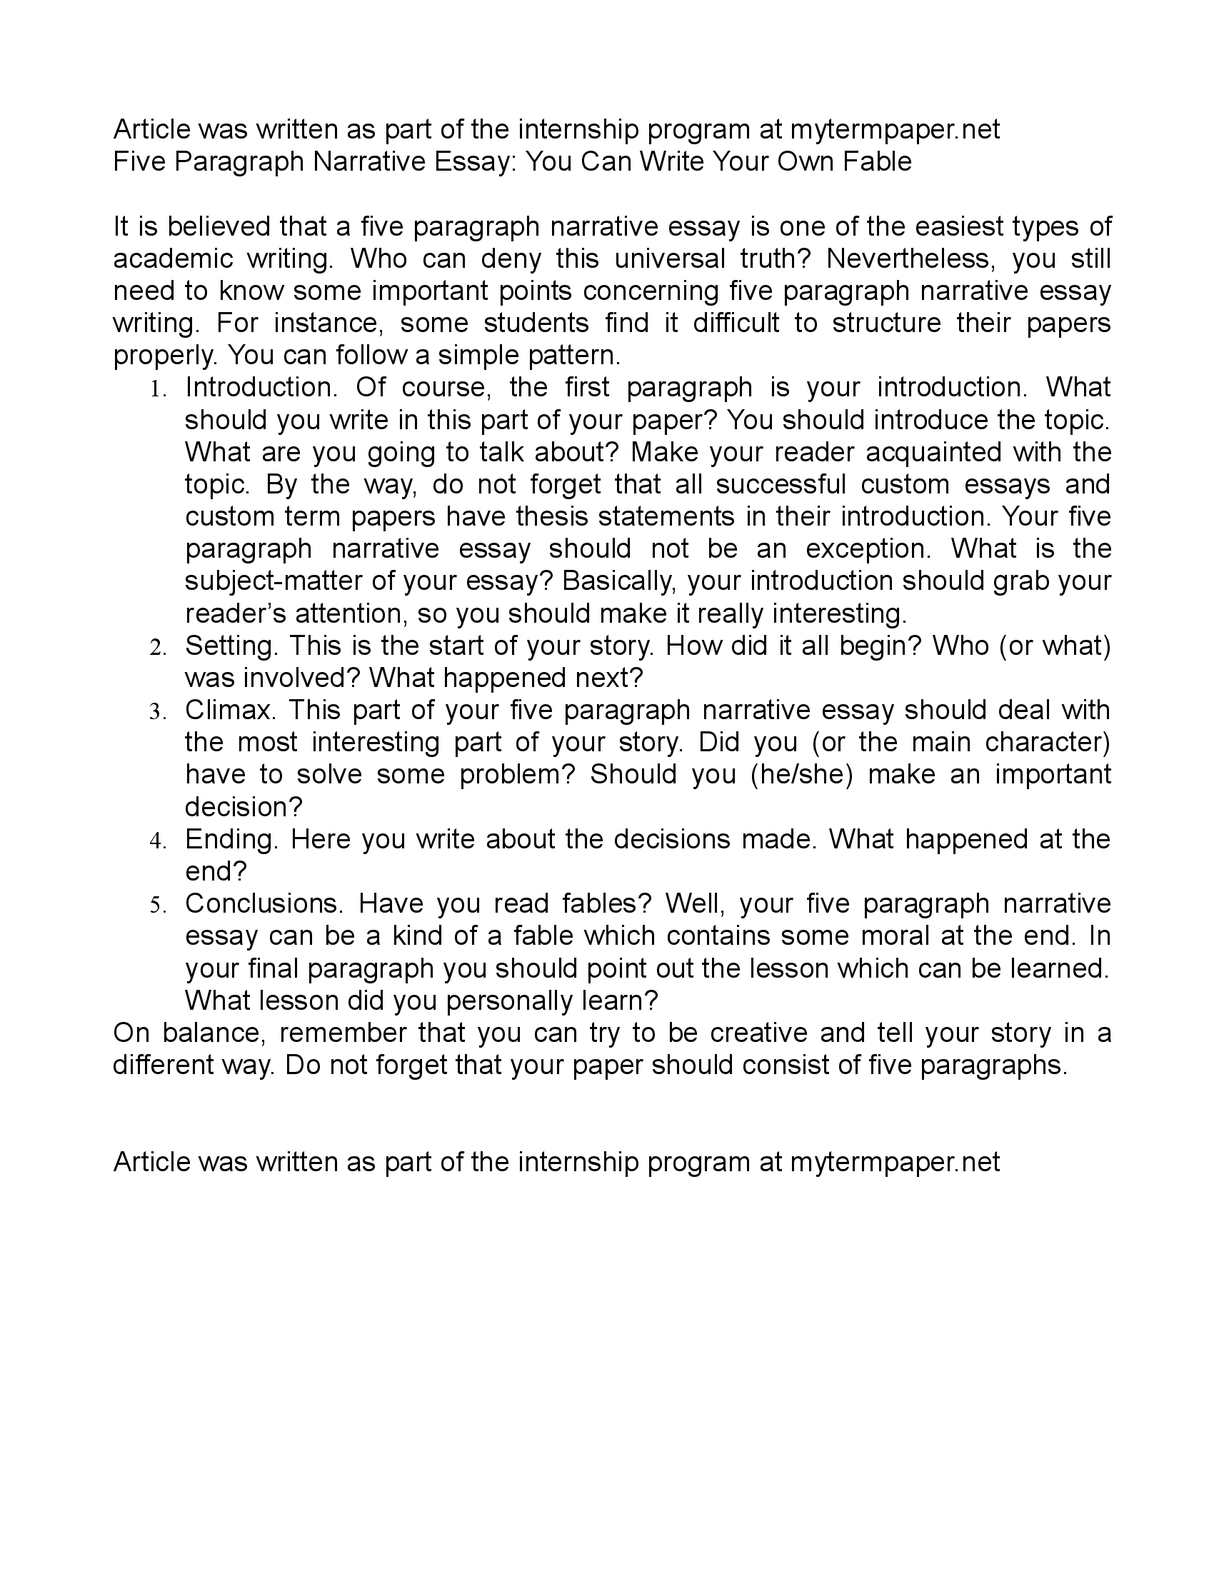 calam eacute o five paragraph narrative essay you can write your own fable